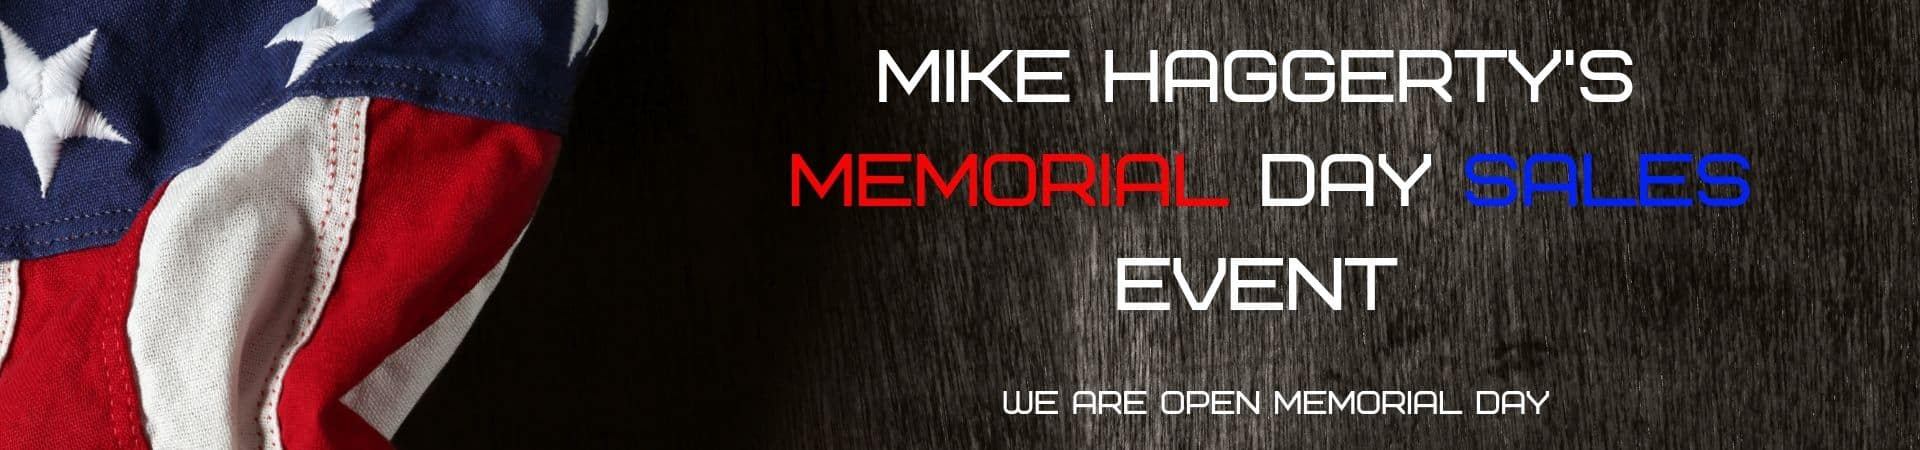 Mike Haggerty Memorial Day Hours